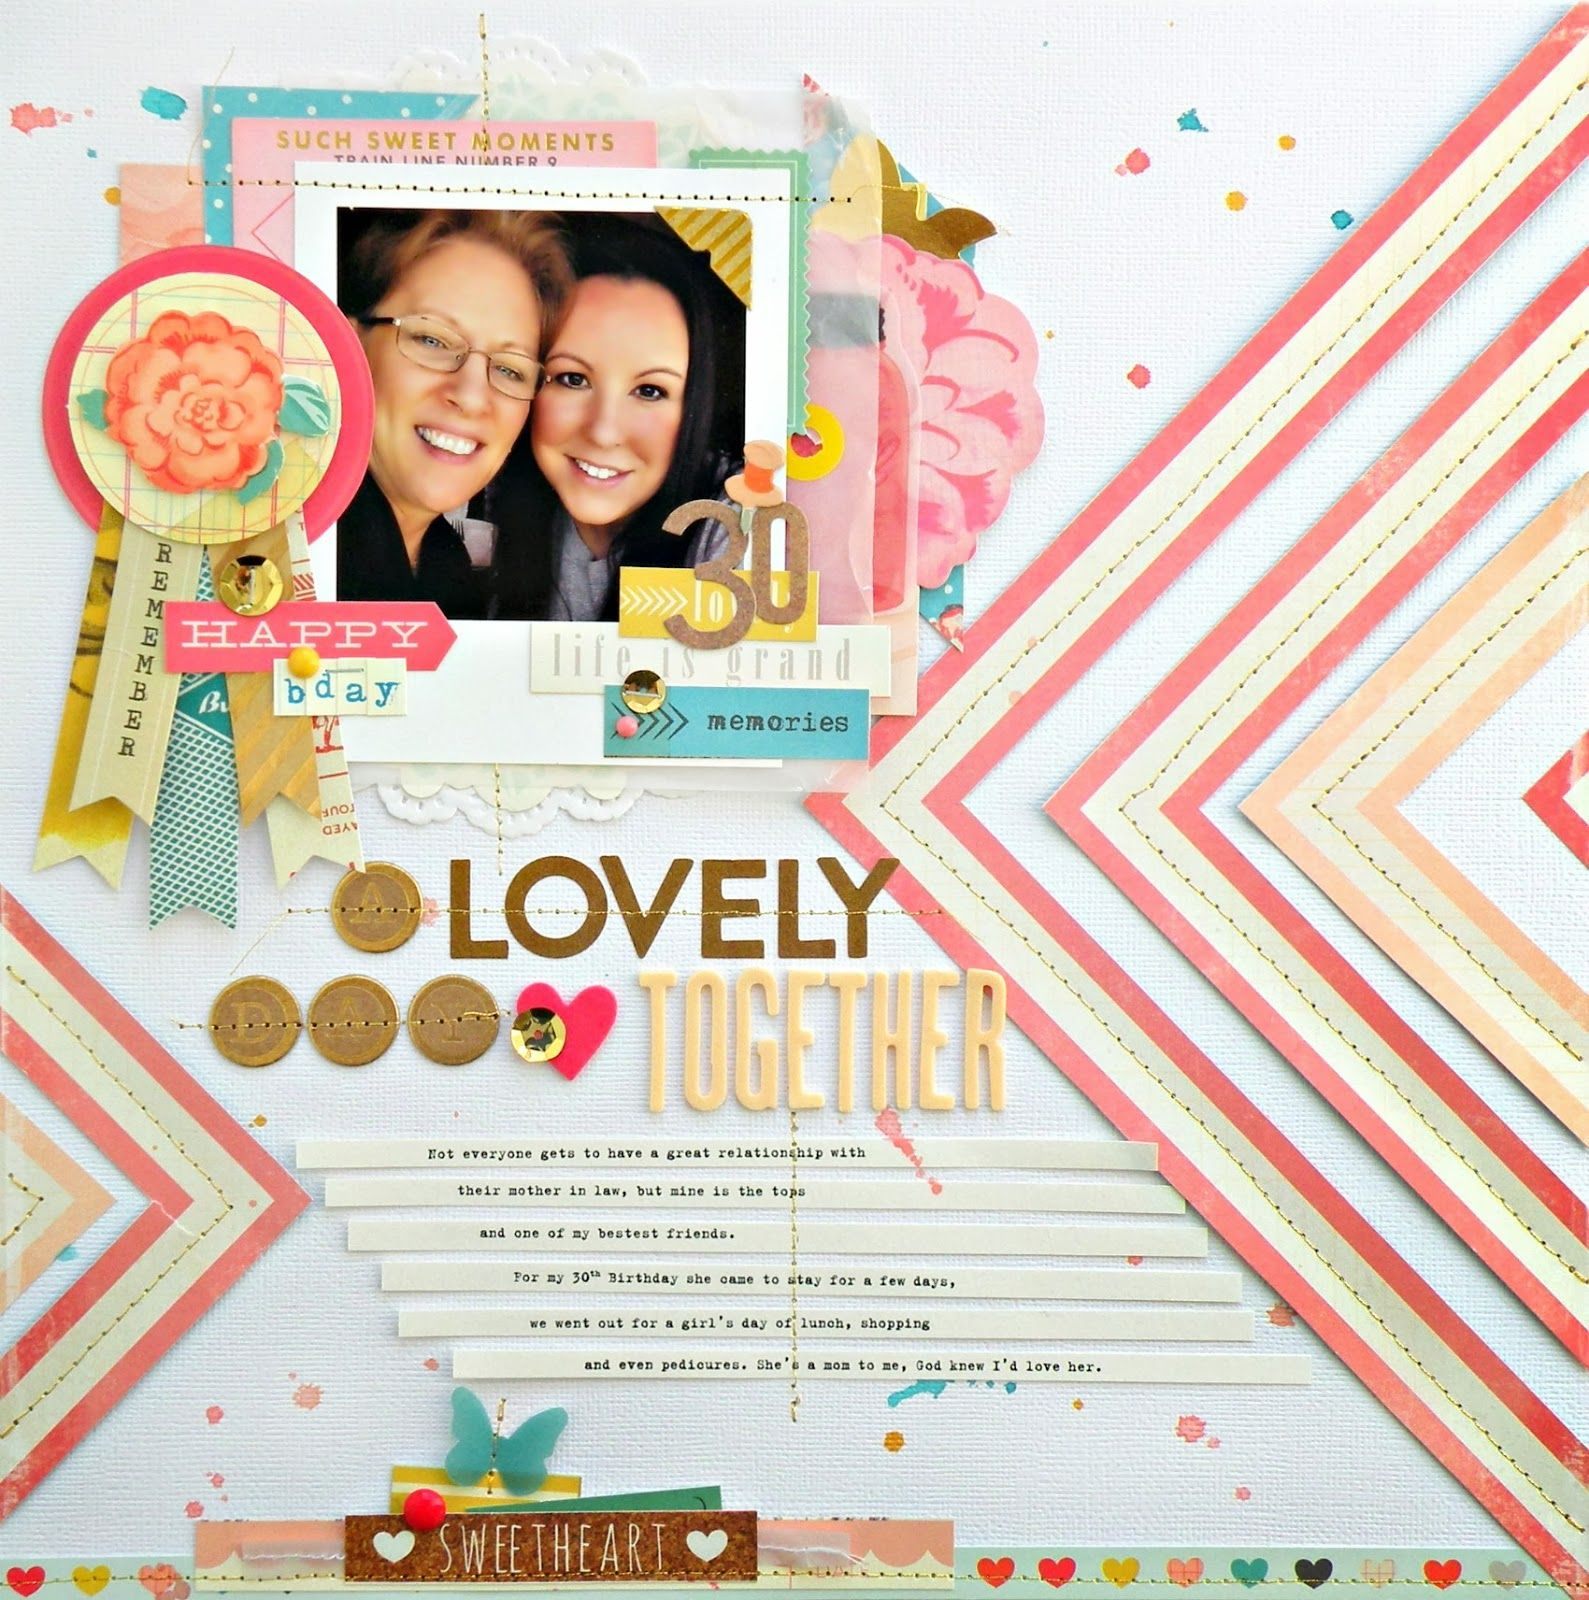 My Bits of Sunshine: A Crate Paper Layout- A Lovely Day Together